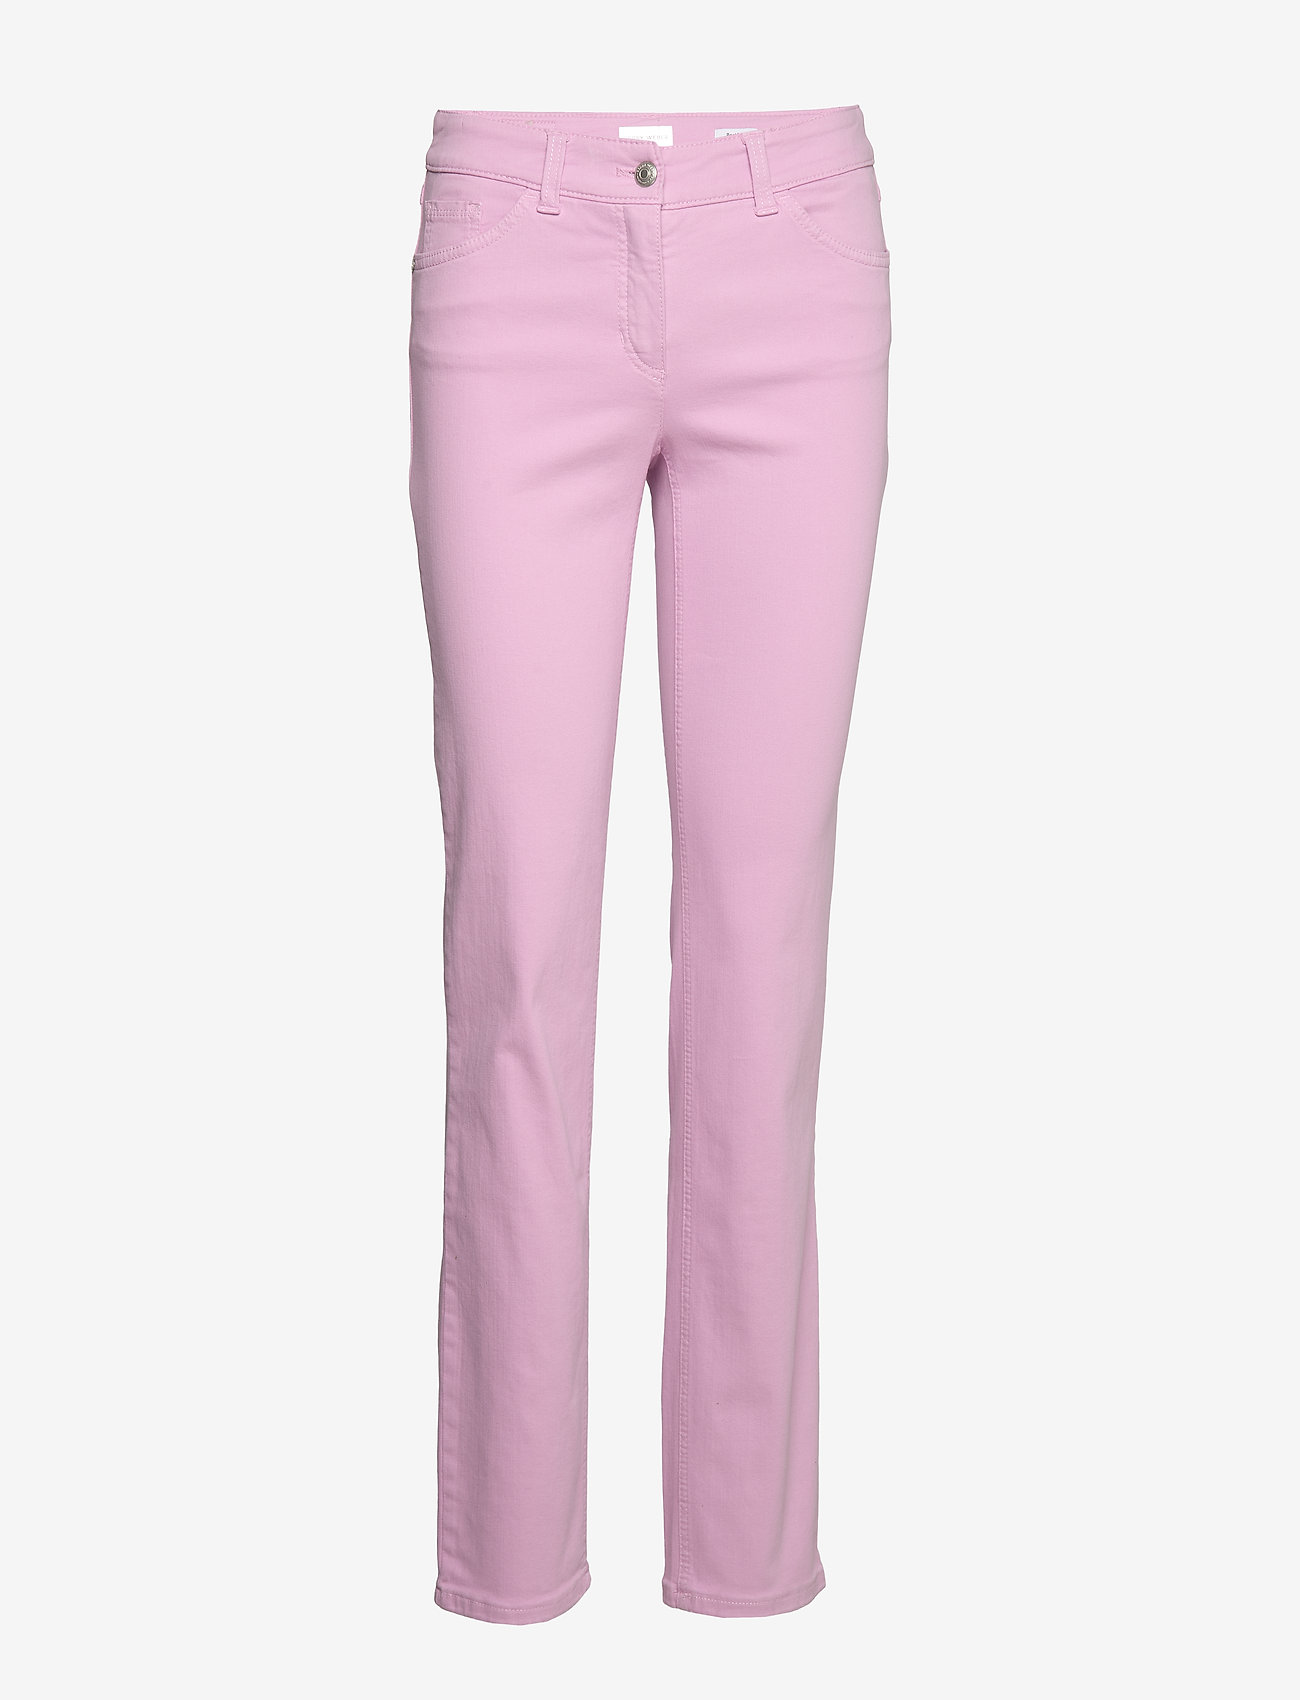 Gerry Weber Edition - JEANS LONG - straight jeans - pastel lavender - 0